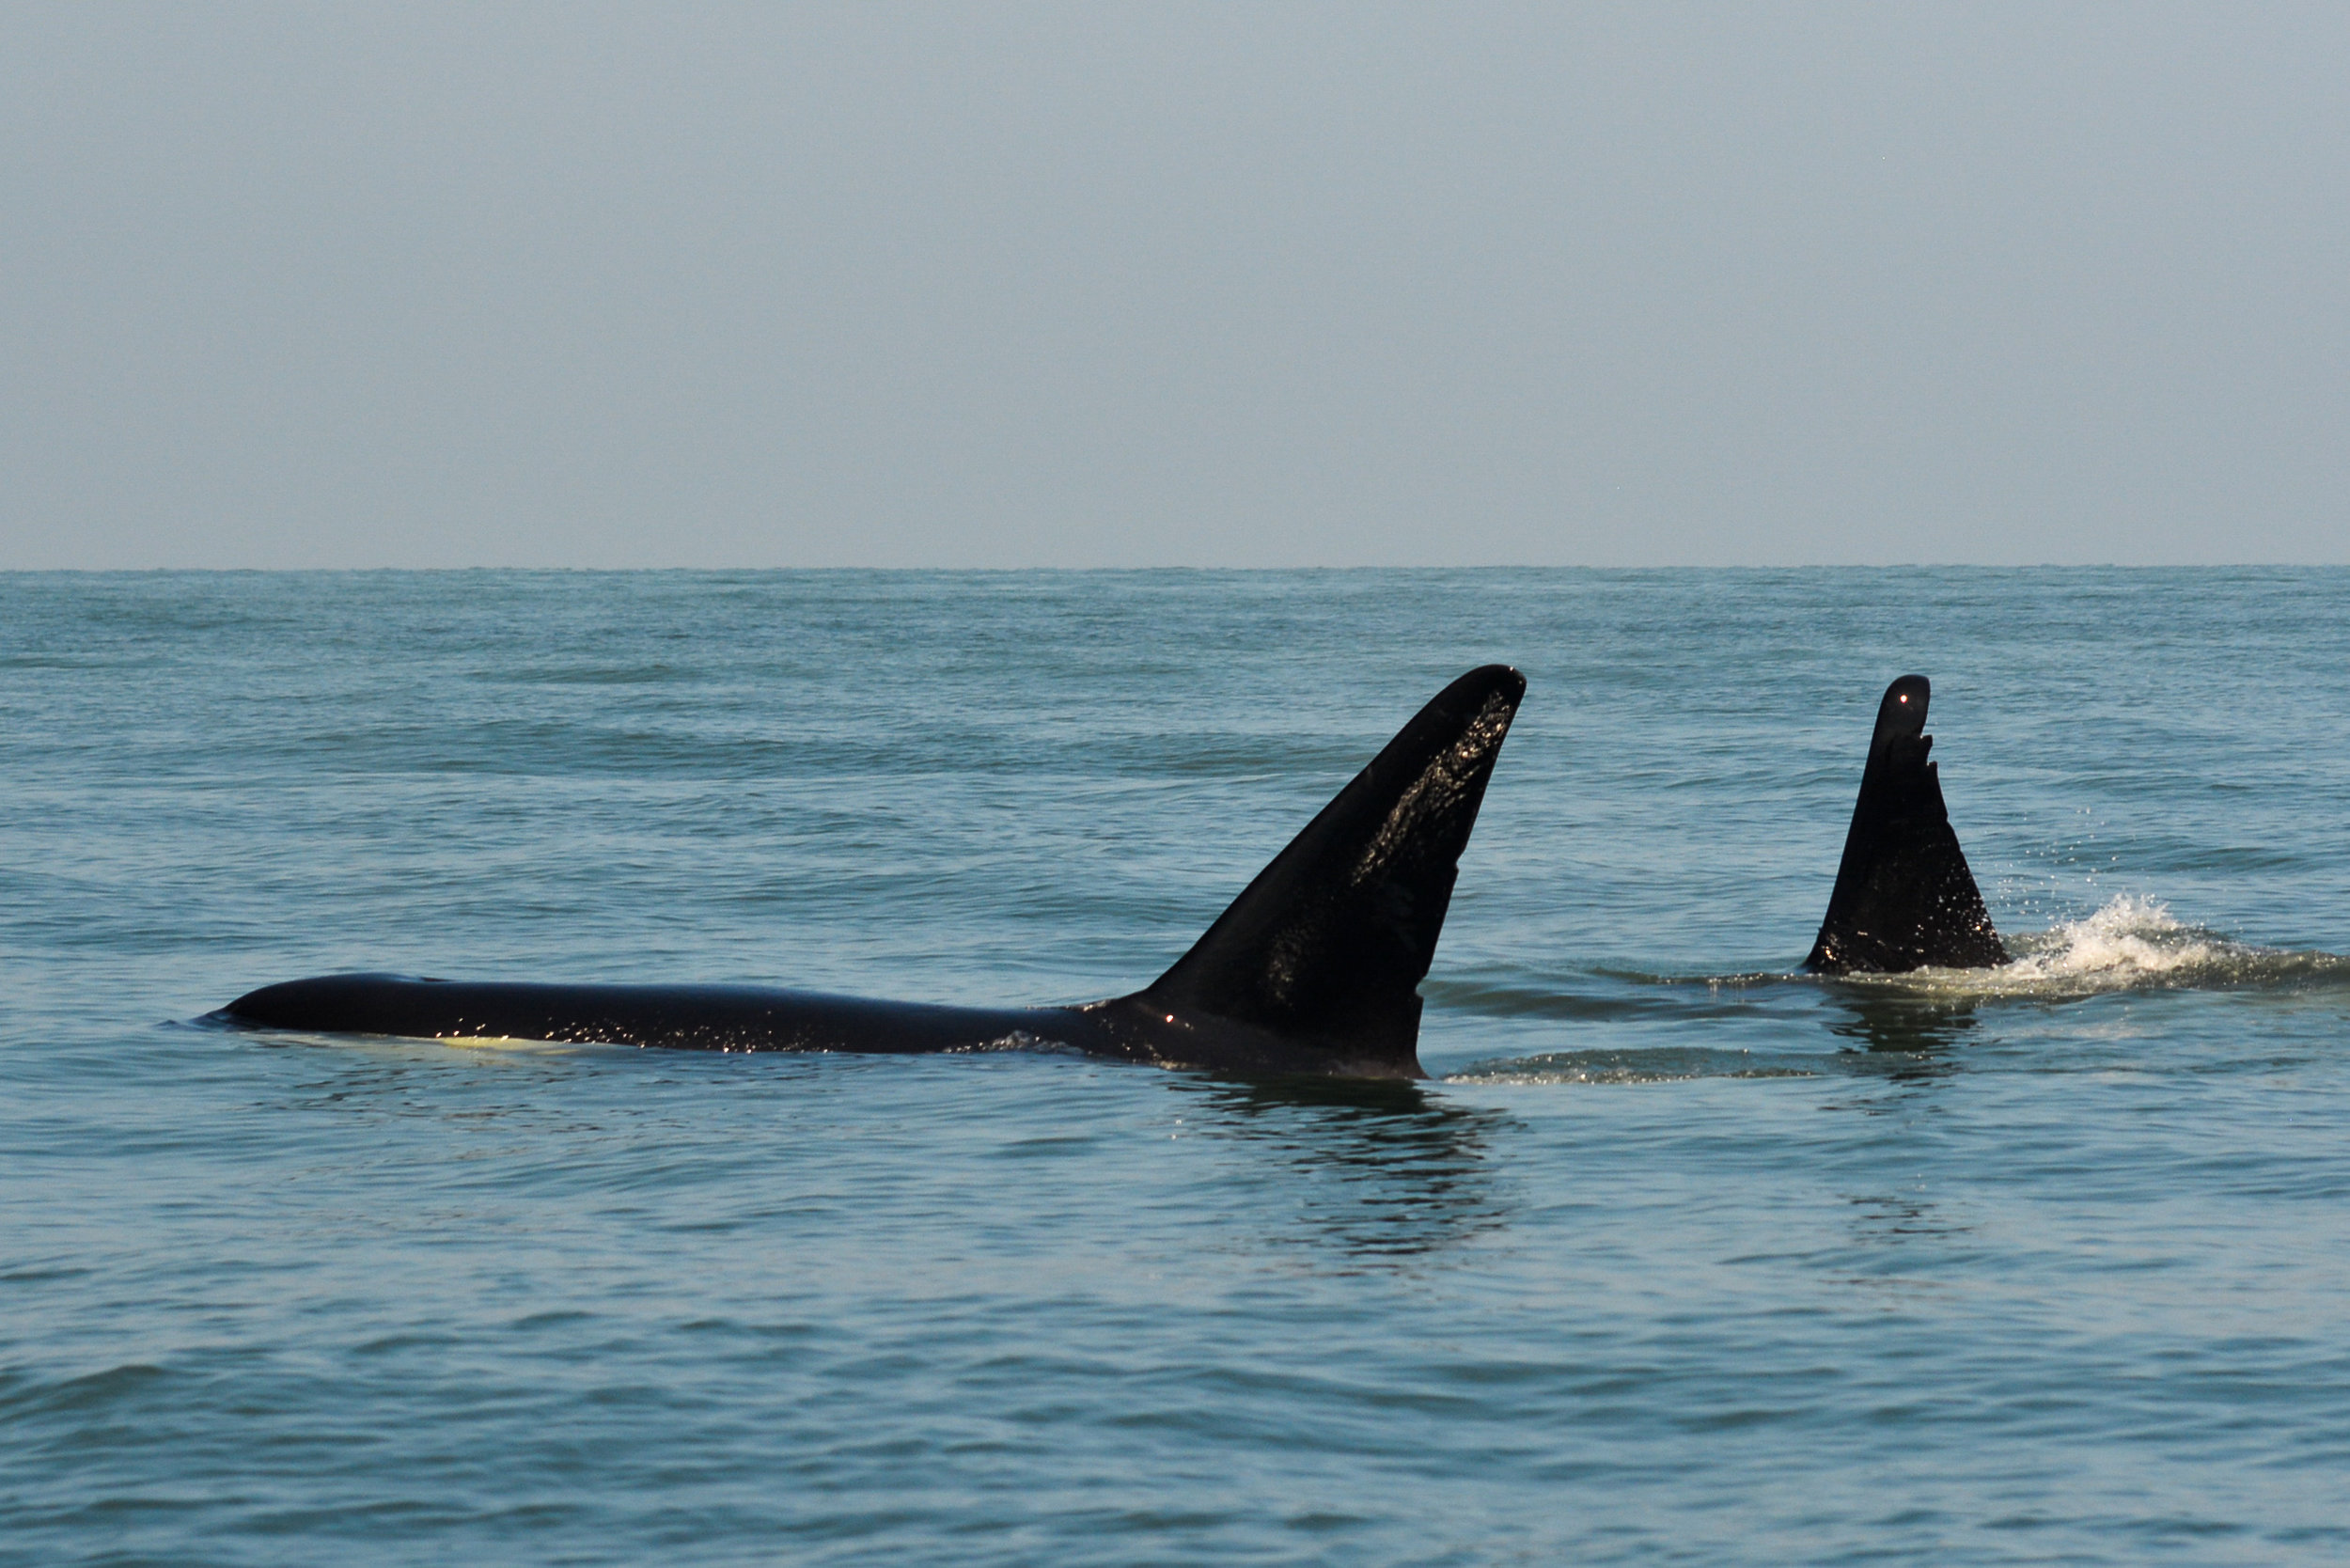 T46 (left) and her 18 year old offspring, T46D (right) surfacing. Photo by Val Watson - 10:30 tour.